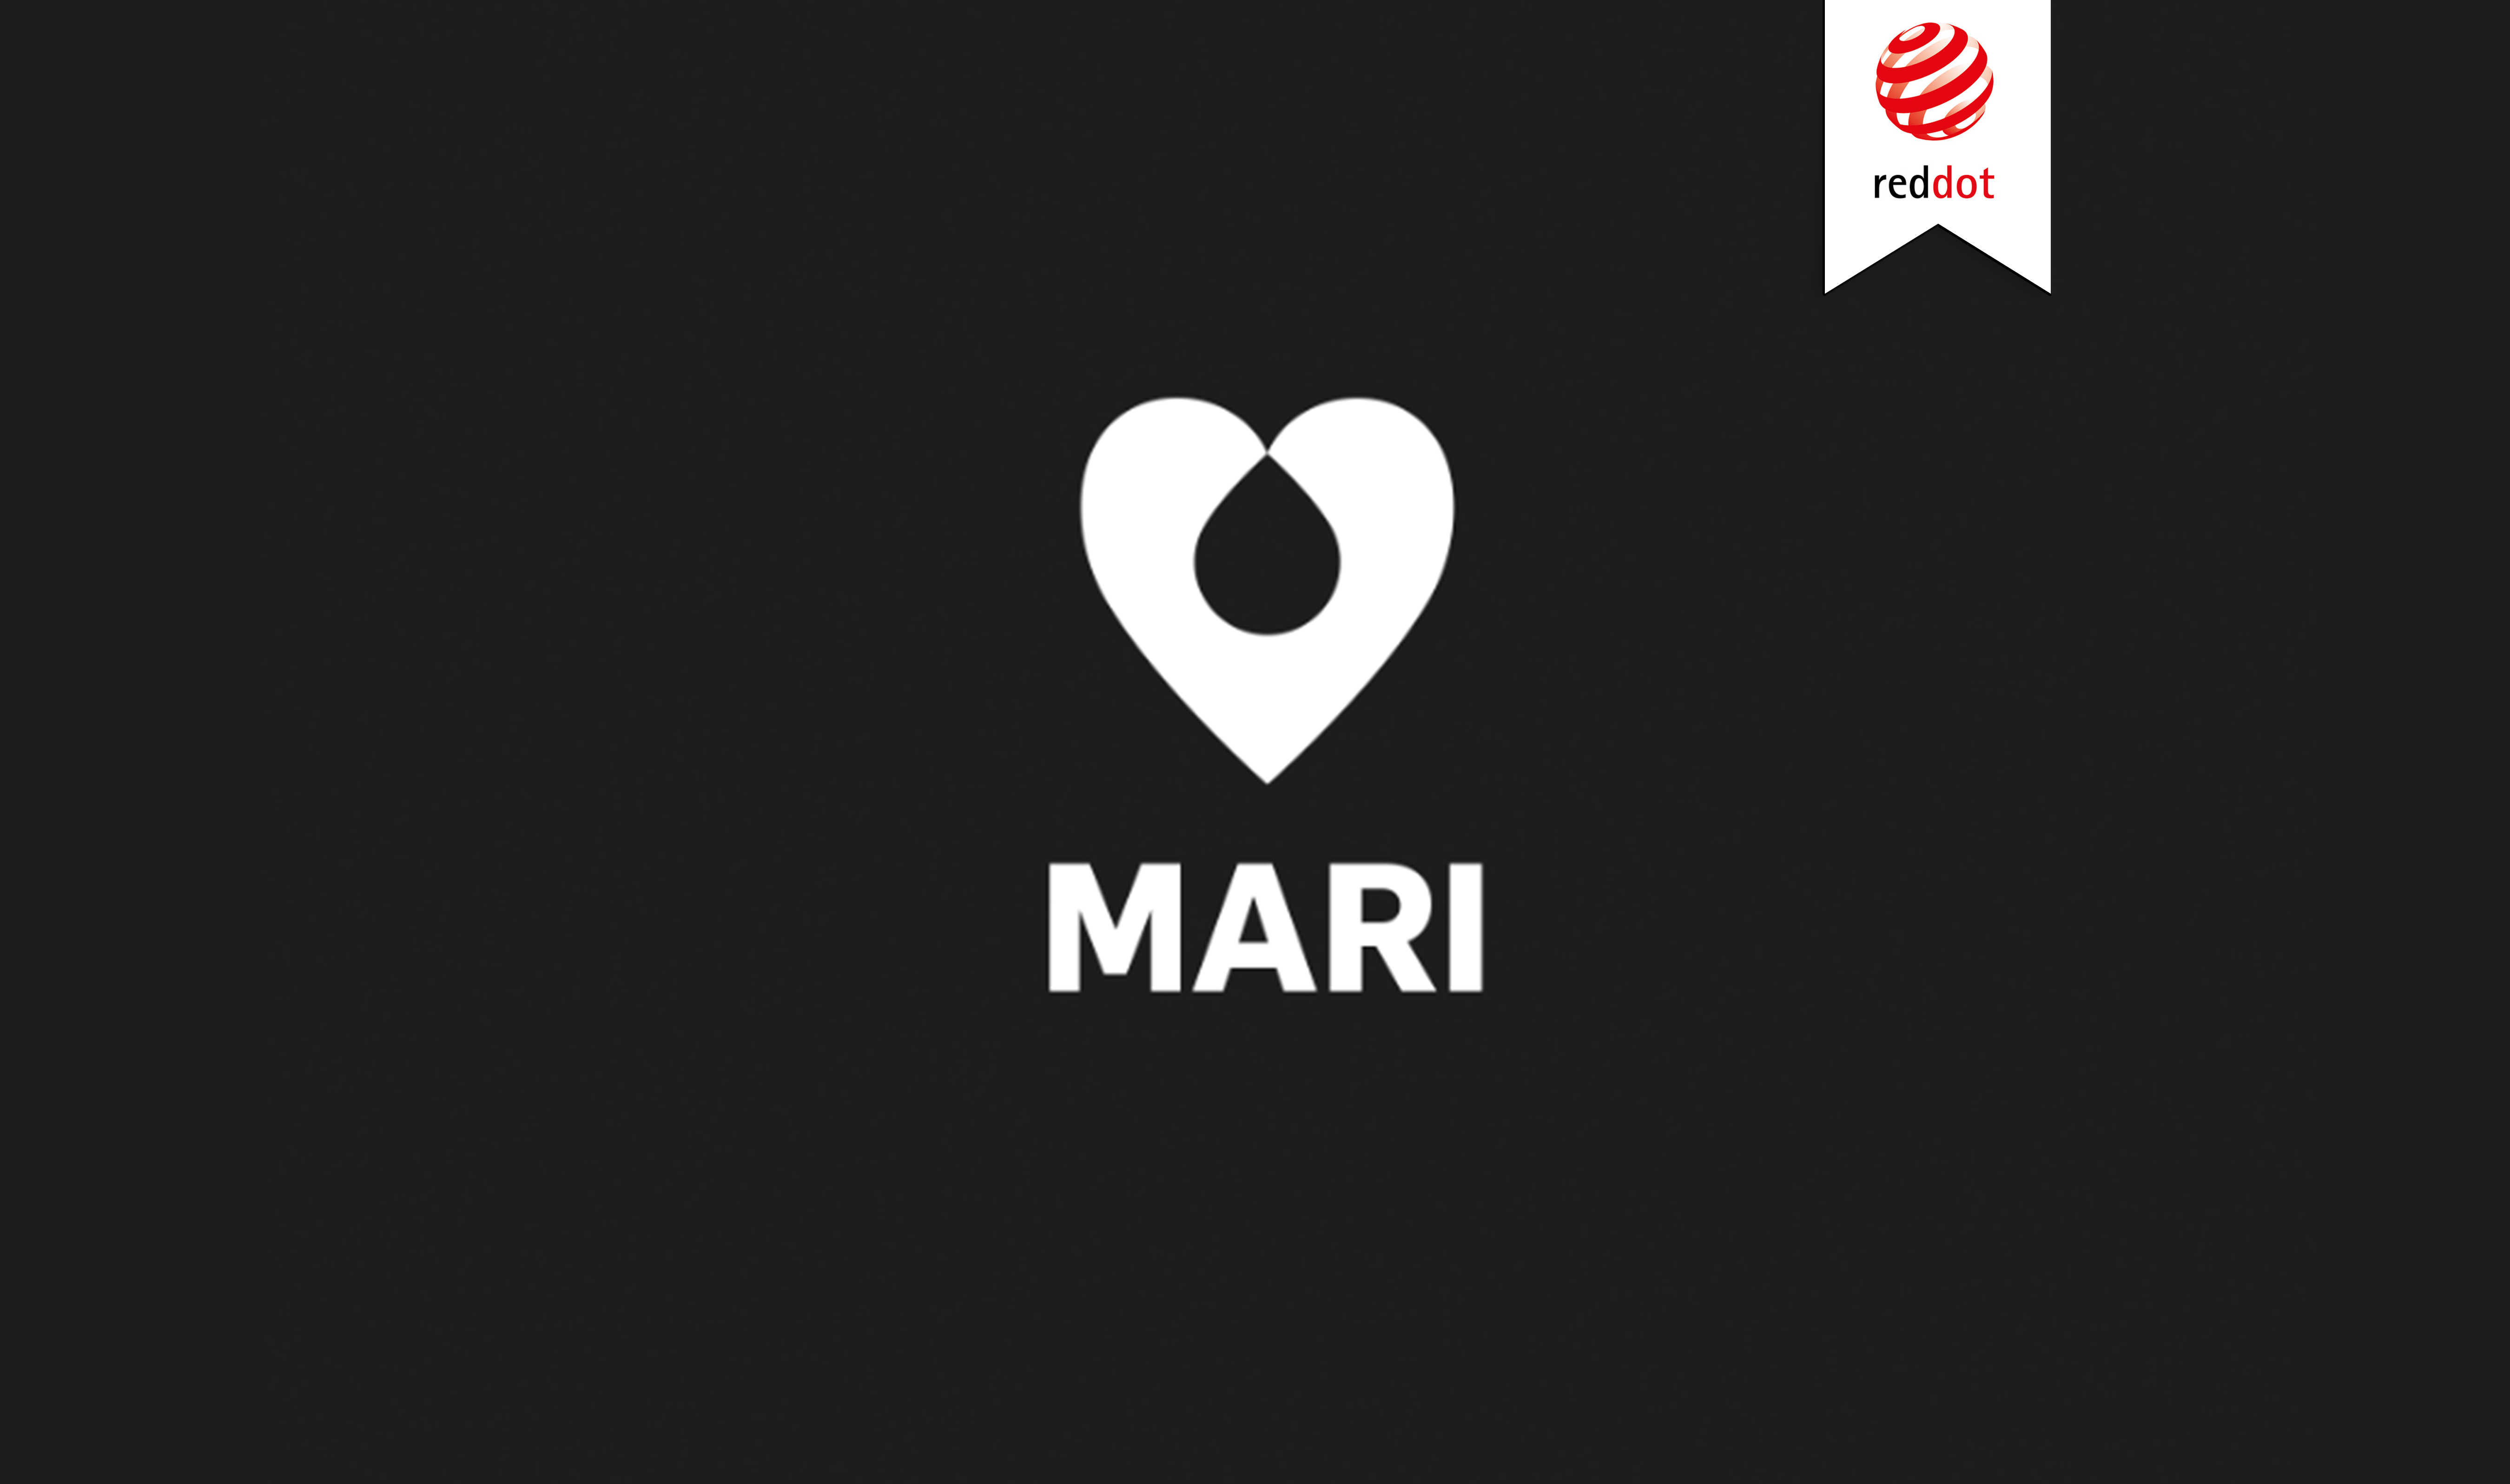 Mari - The interactive label